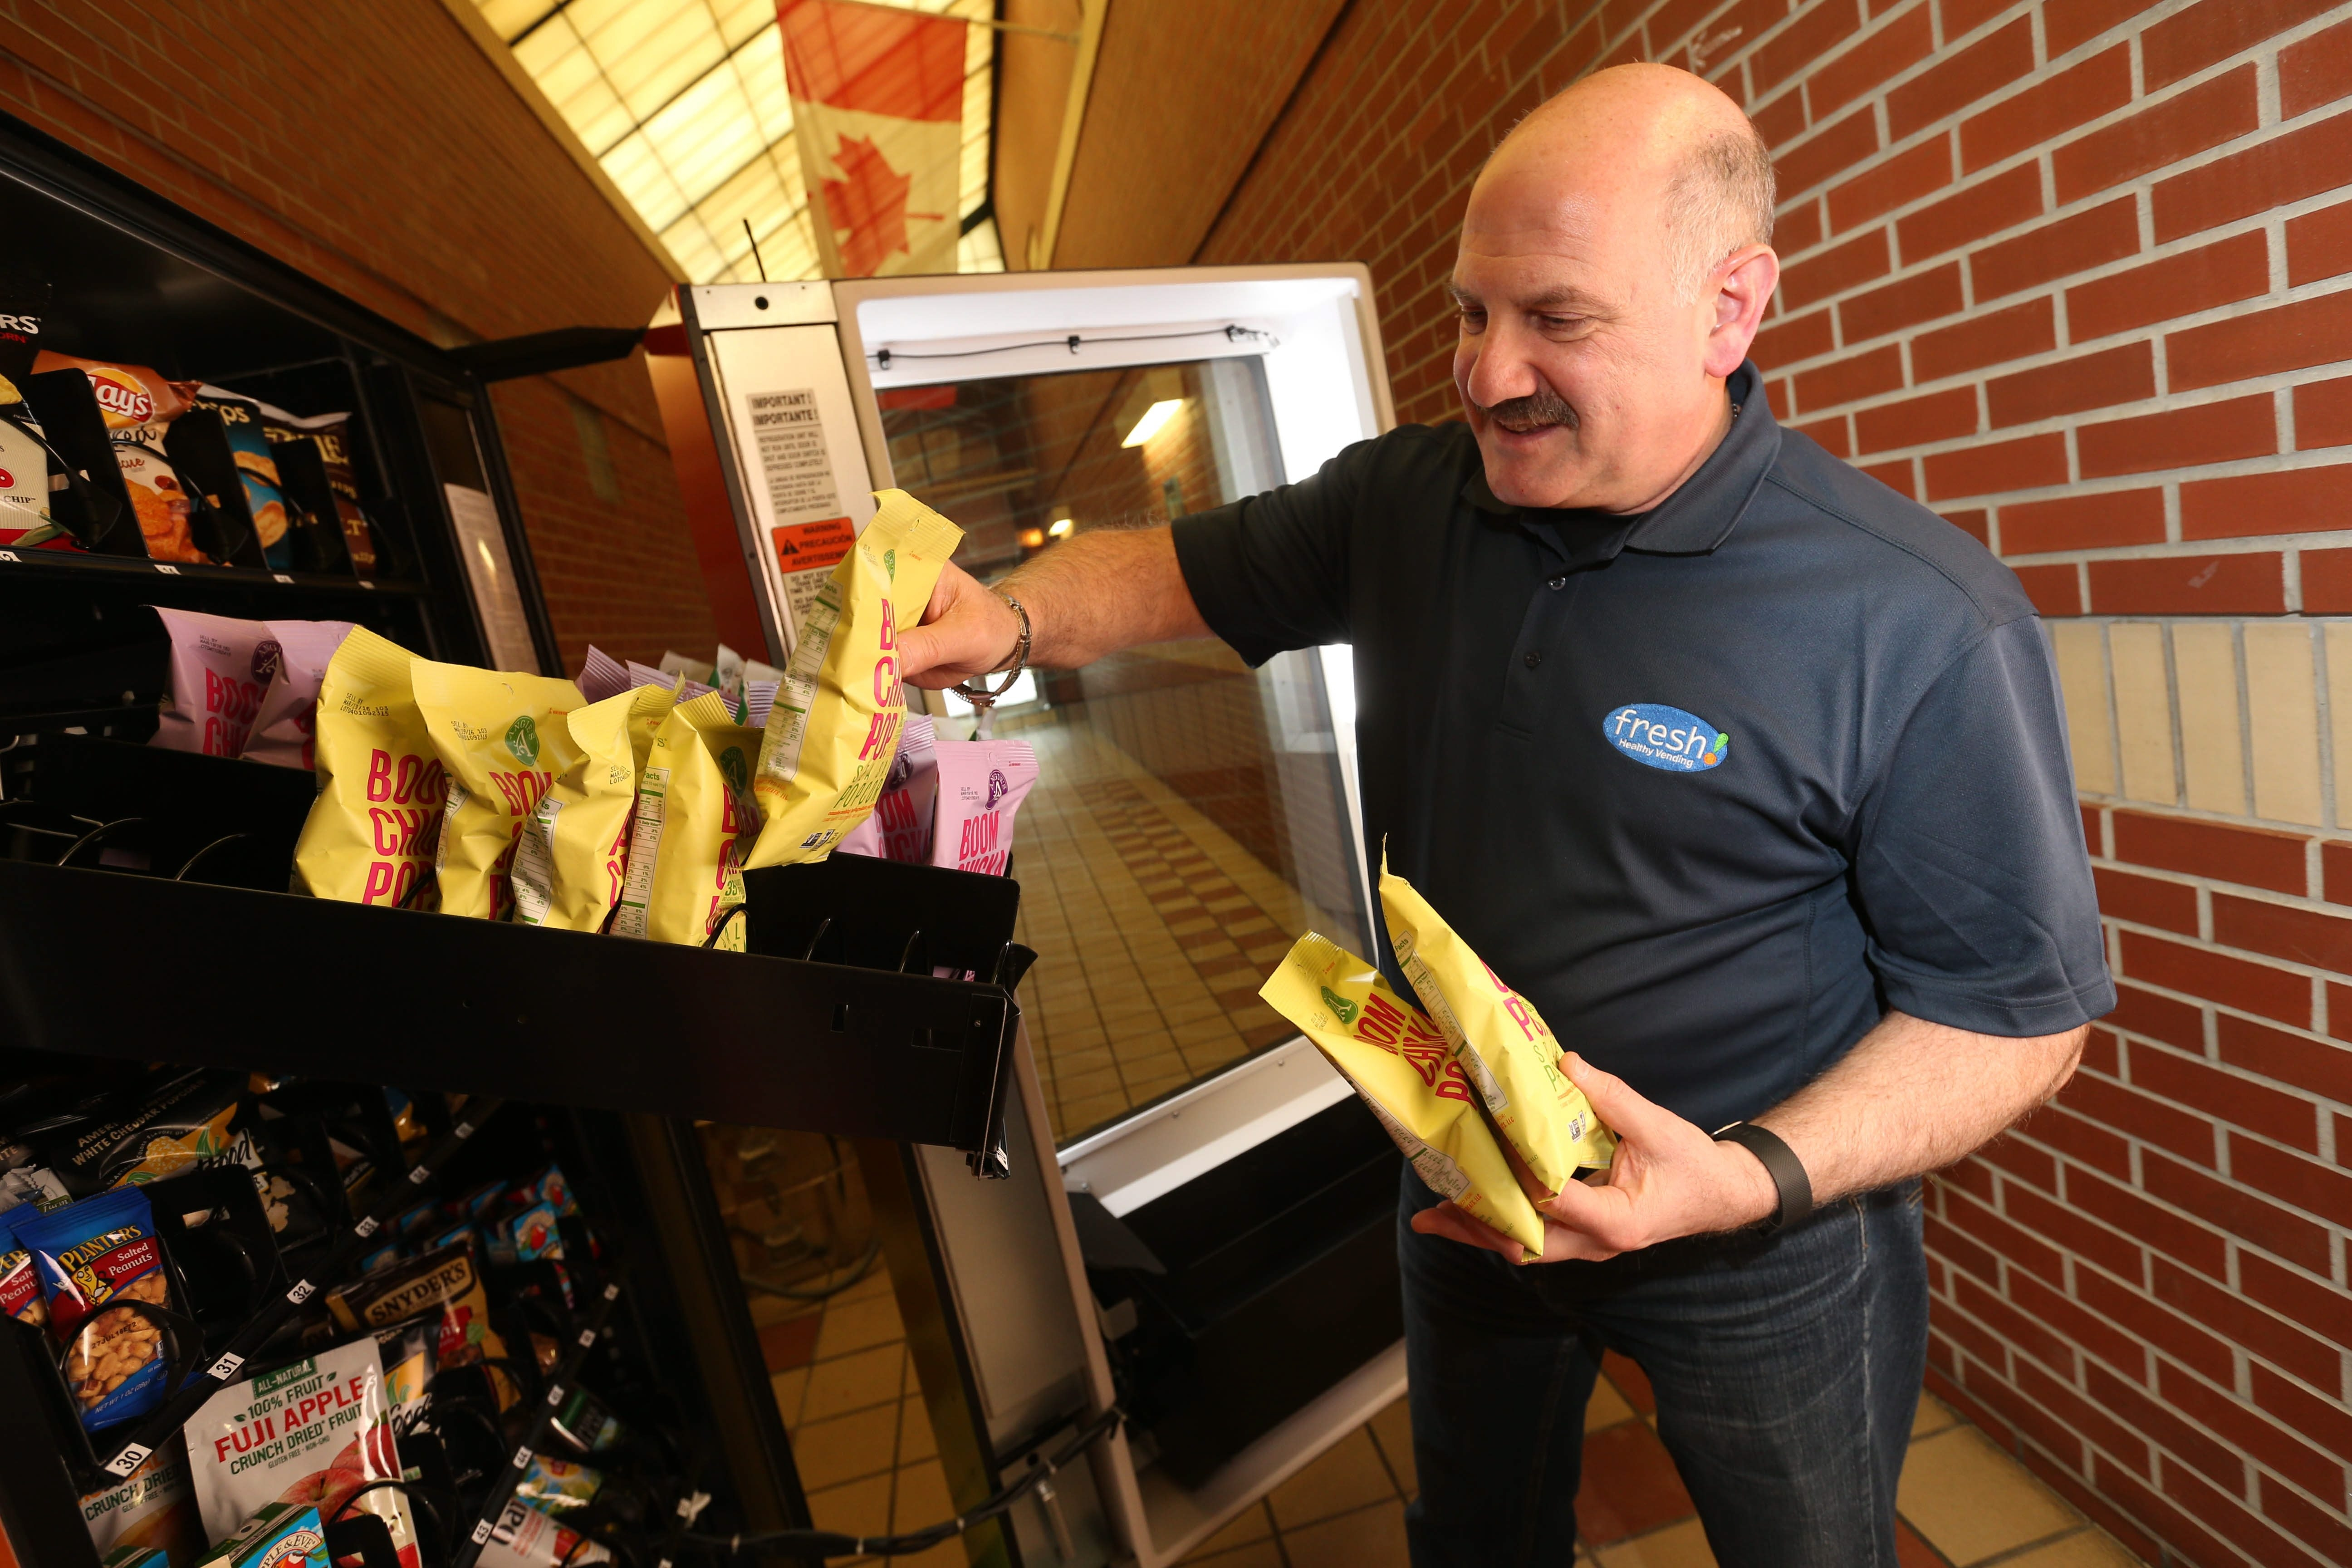 """If I eat one (candy bar) a day, that's 3 pounds a month. By the end of the year, I'm 35 pounds overweight. If I cut out that one candy bar a day and have something else, that's better."" – Michael Ficorilli, owner of Fresh Healthy Vending franchise in Western New York"